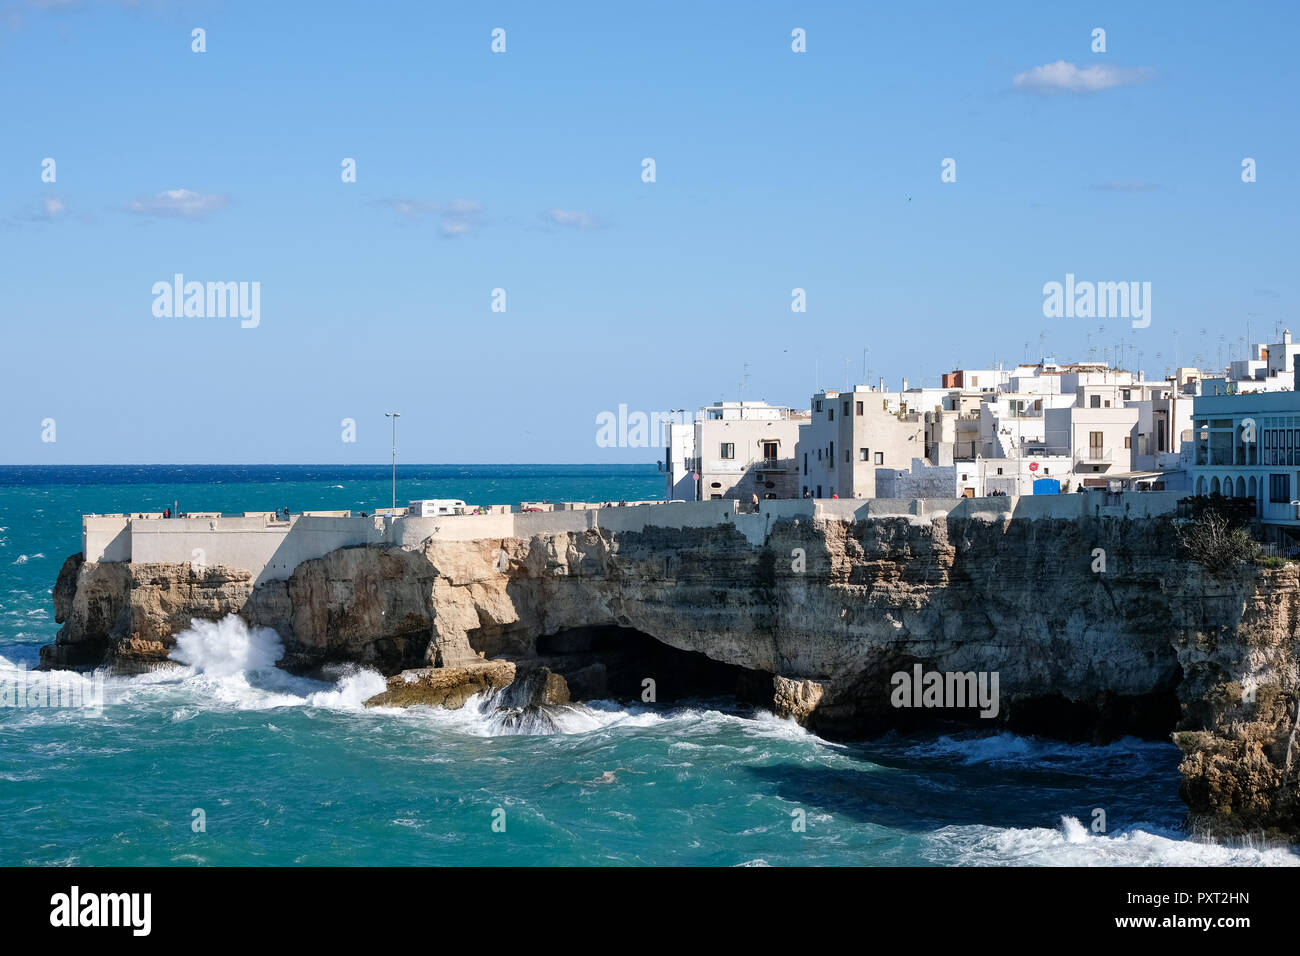 Polignano a Mare, Italy. View of the cliffs and sea at the coastal town of Polignano a Mare in Puglia, Southern Italy. Photographed on a sunny day. - Stock Image